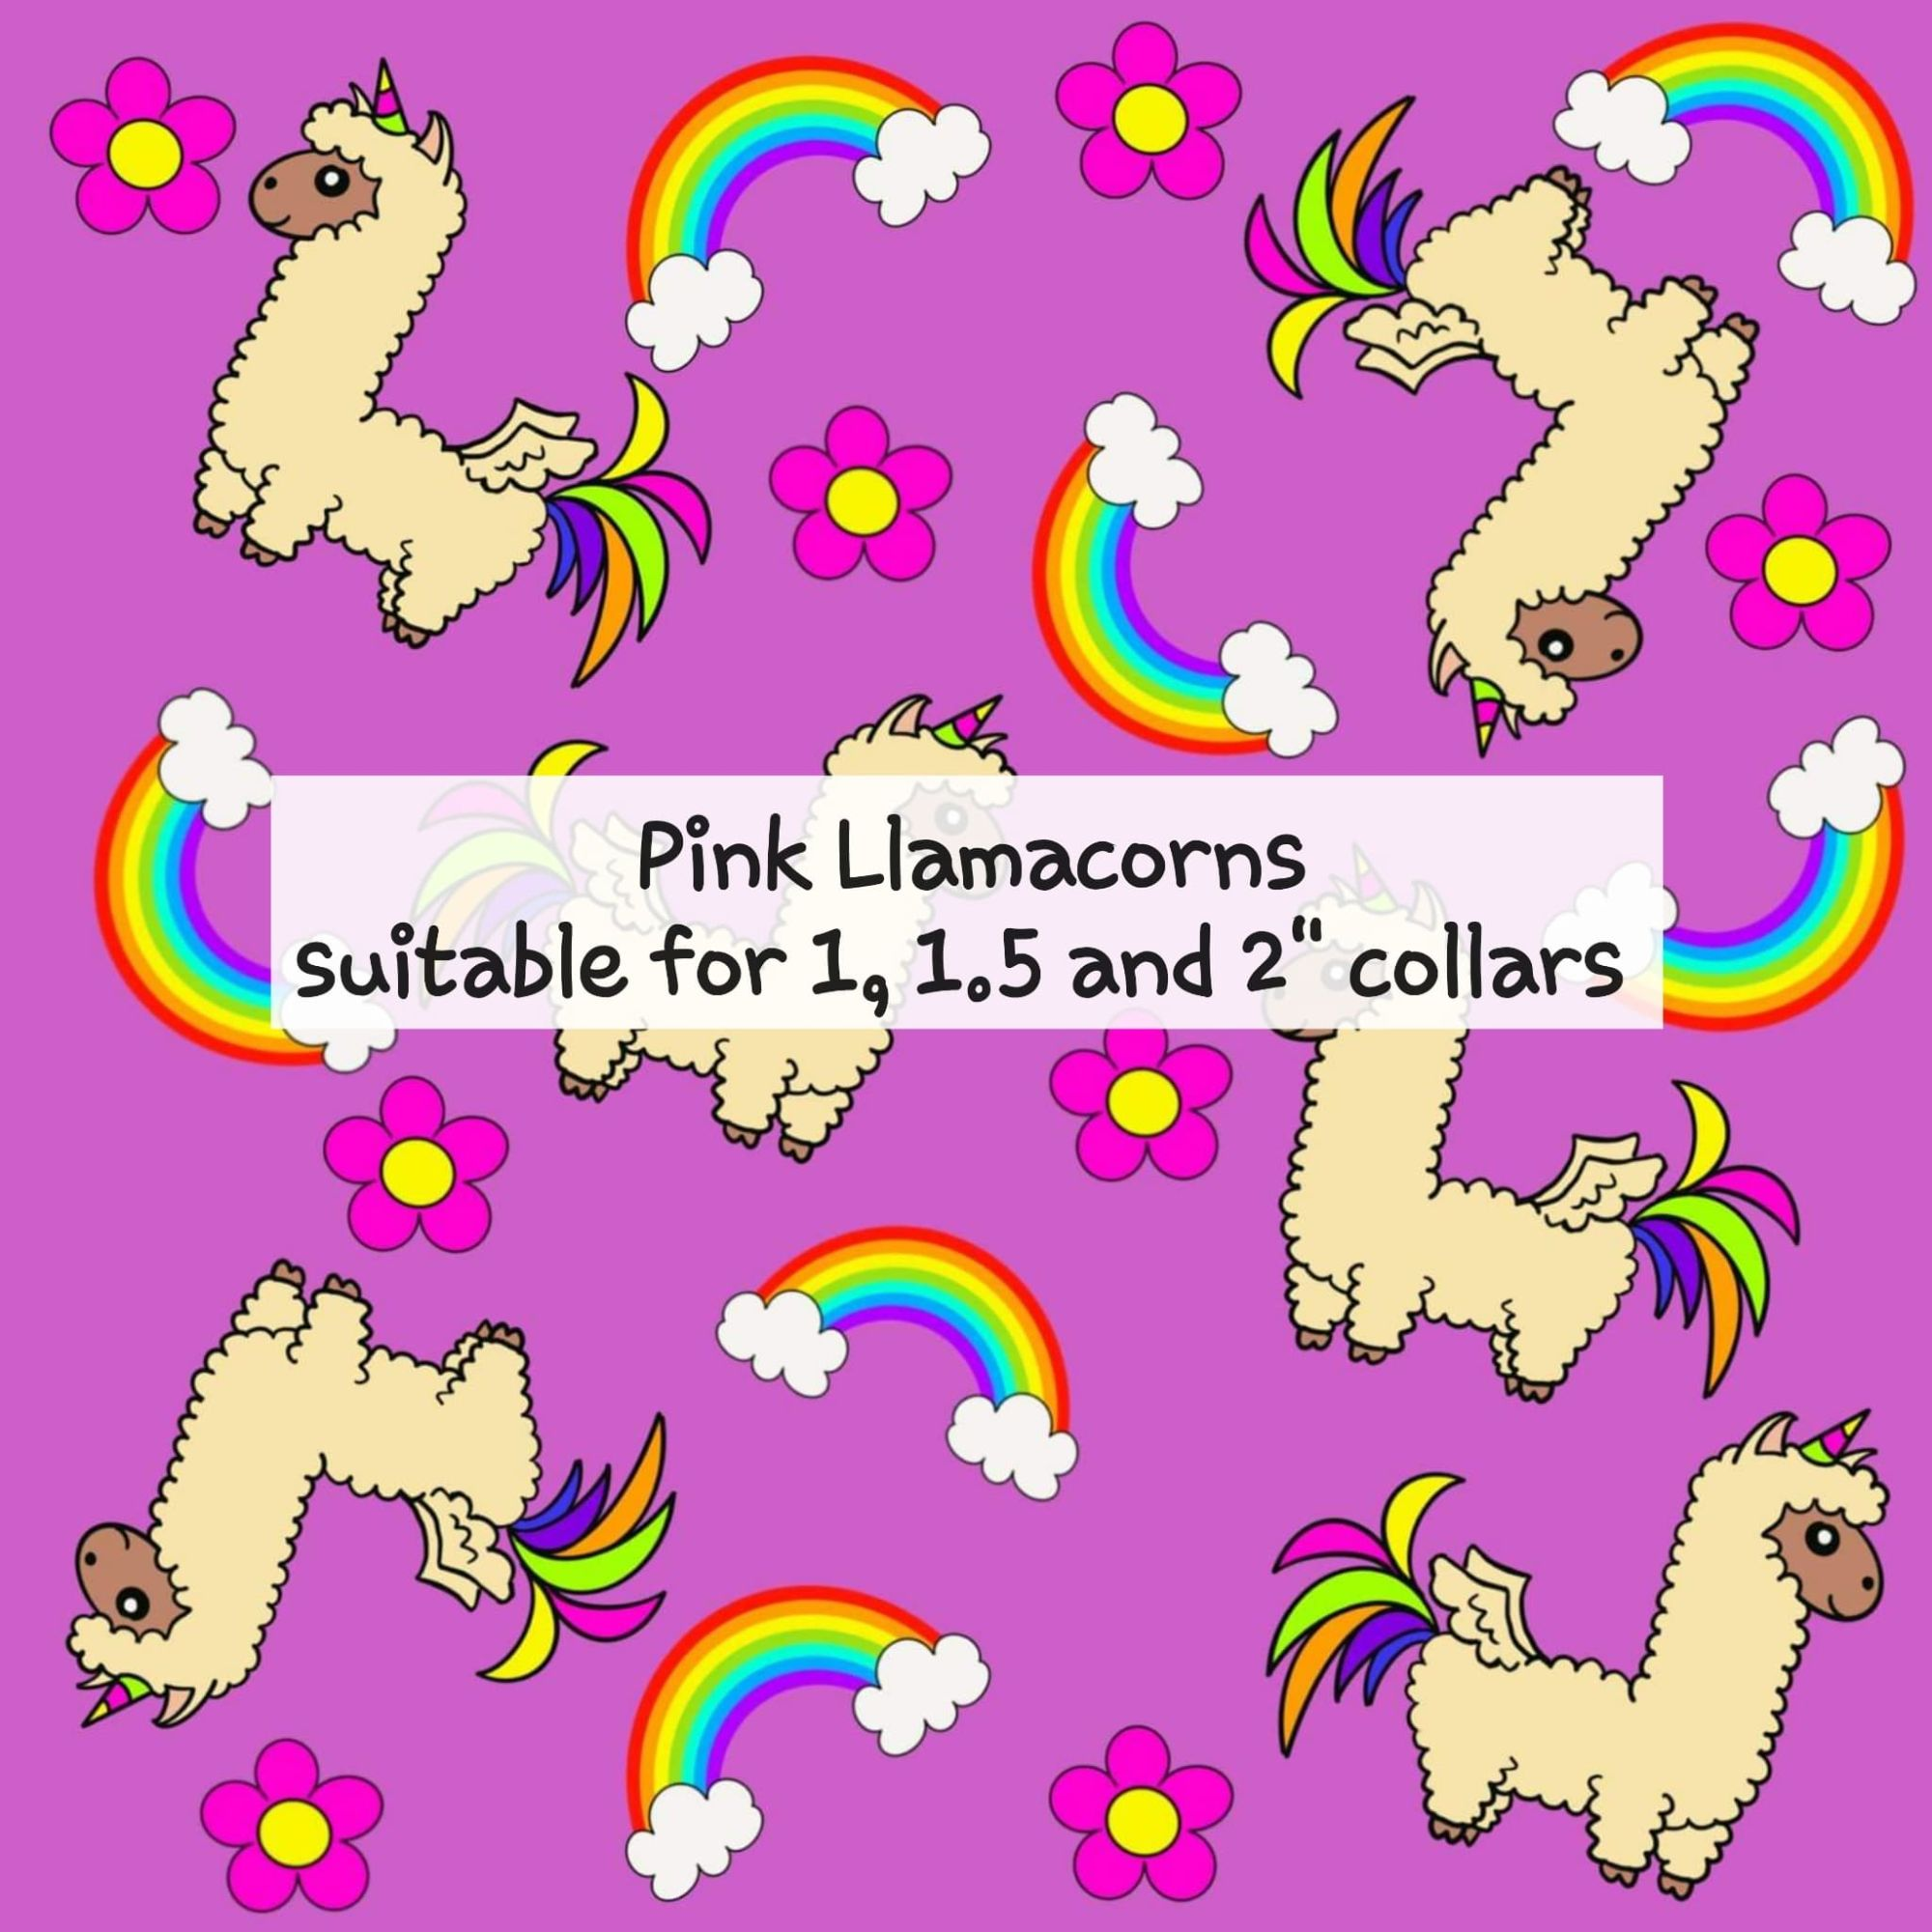 Pink Llamacorns - Suitable for 1, 1.5 and 2 inch collars